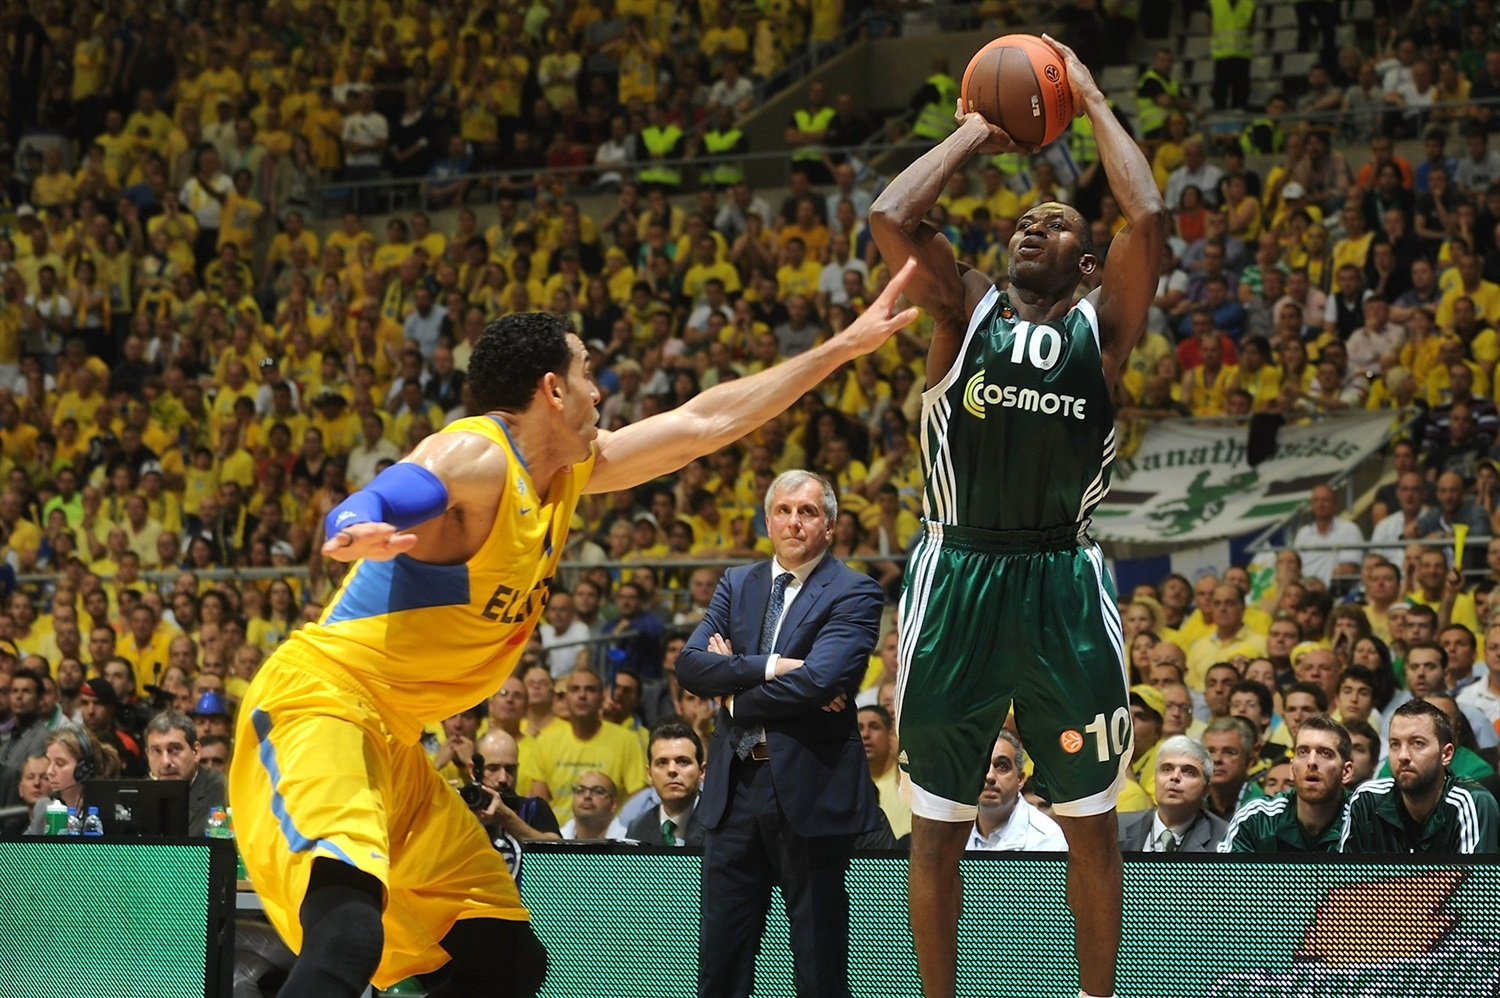 Romain Sato - Panathinaikos Athens - Final Four Barcelona 2011 - EB10